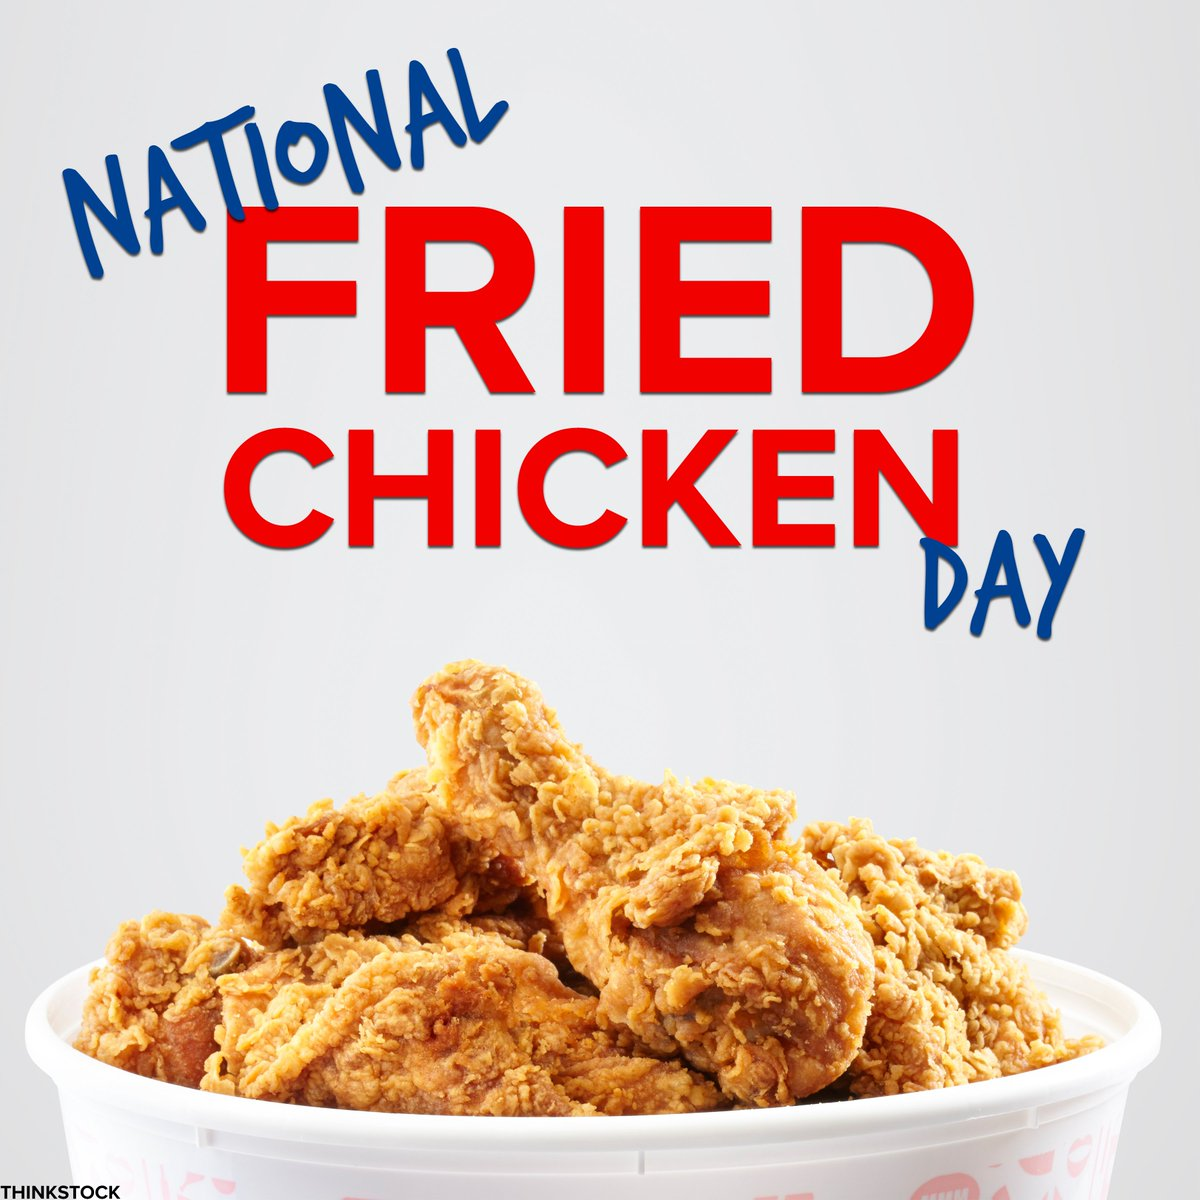 Happy #NationalFriedChickenDay! Who's celebrating for lunch or din and where at? 🍗👀